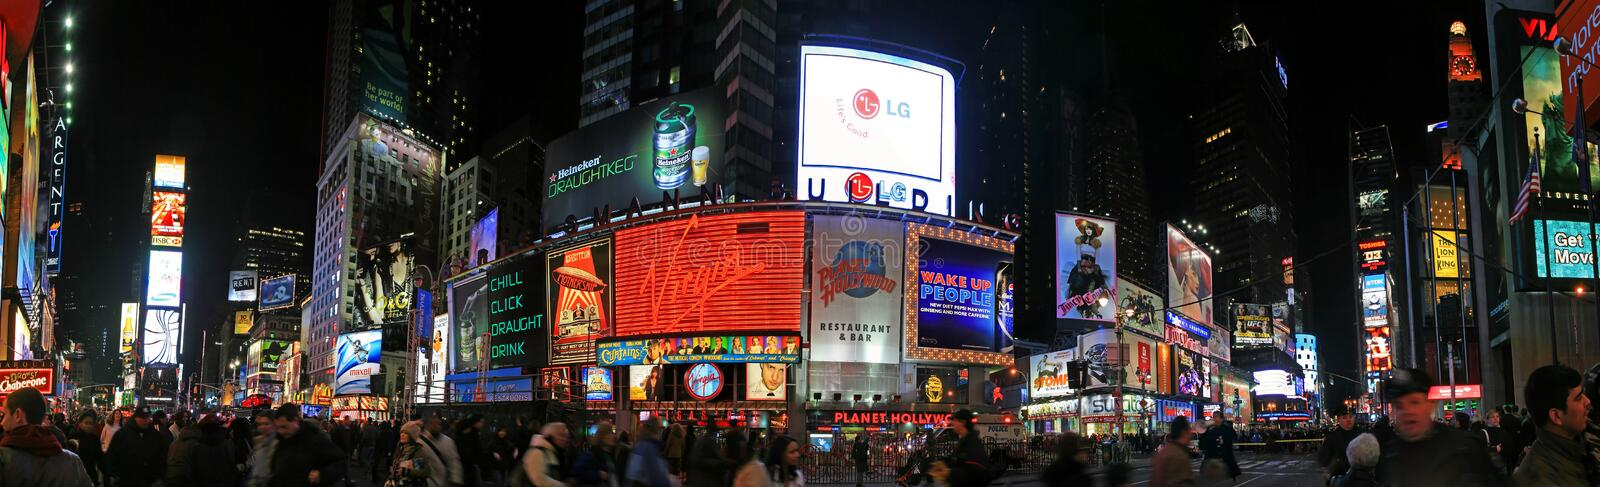 Panorama view of Times Square royalty free stock photography